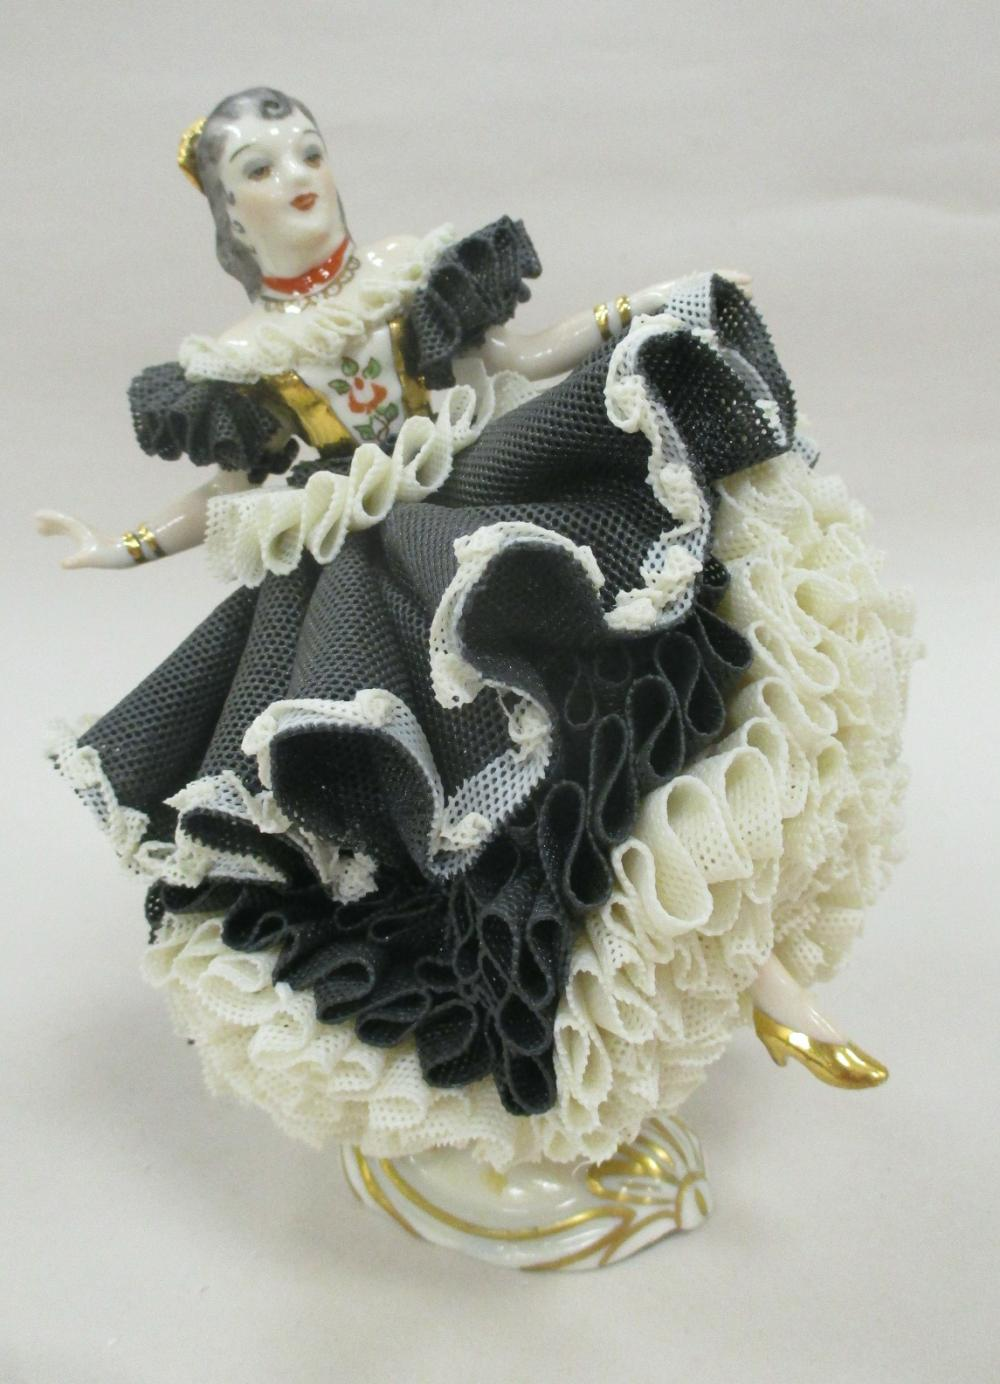 """IRISH DRESDEN LACE FIGURE OF A DANCING WOMAN, """"CARMEN"""". NUMBERED 34320. 6"""" TALL"""